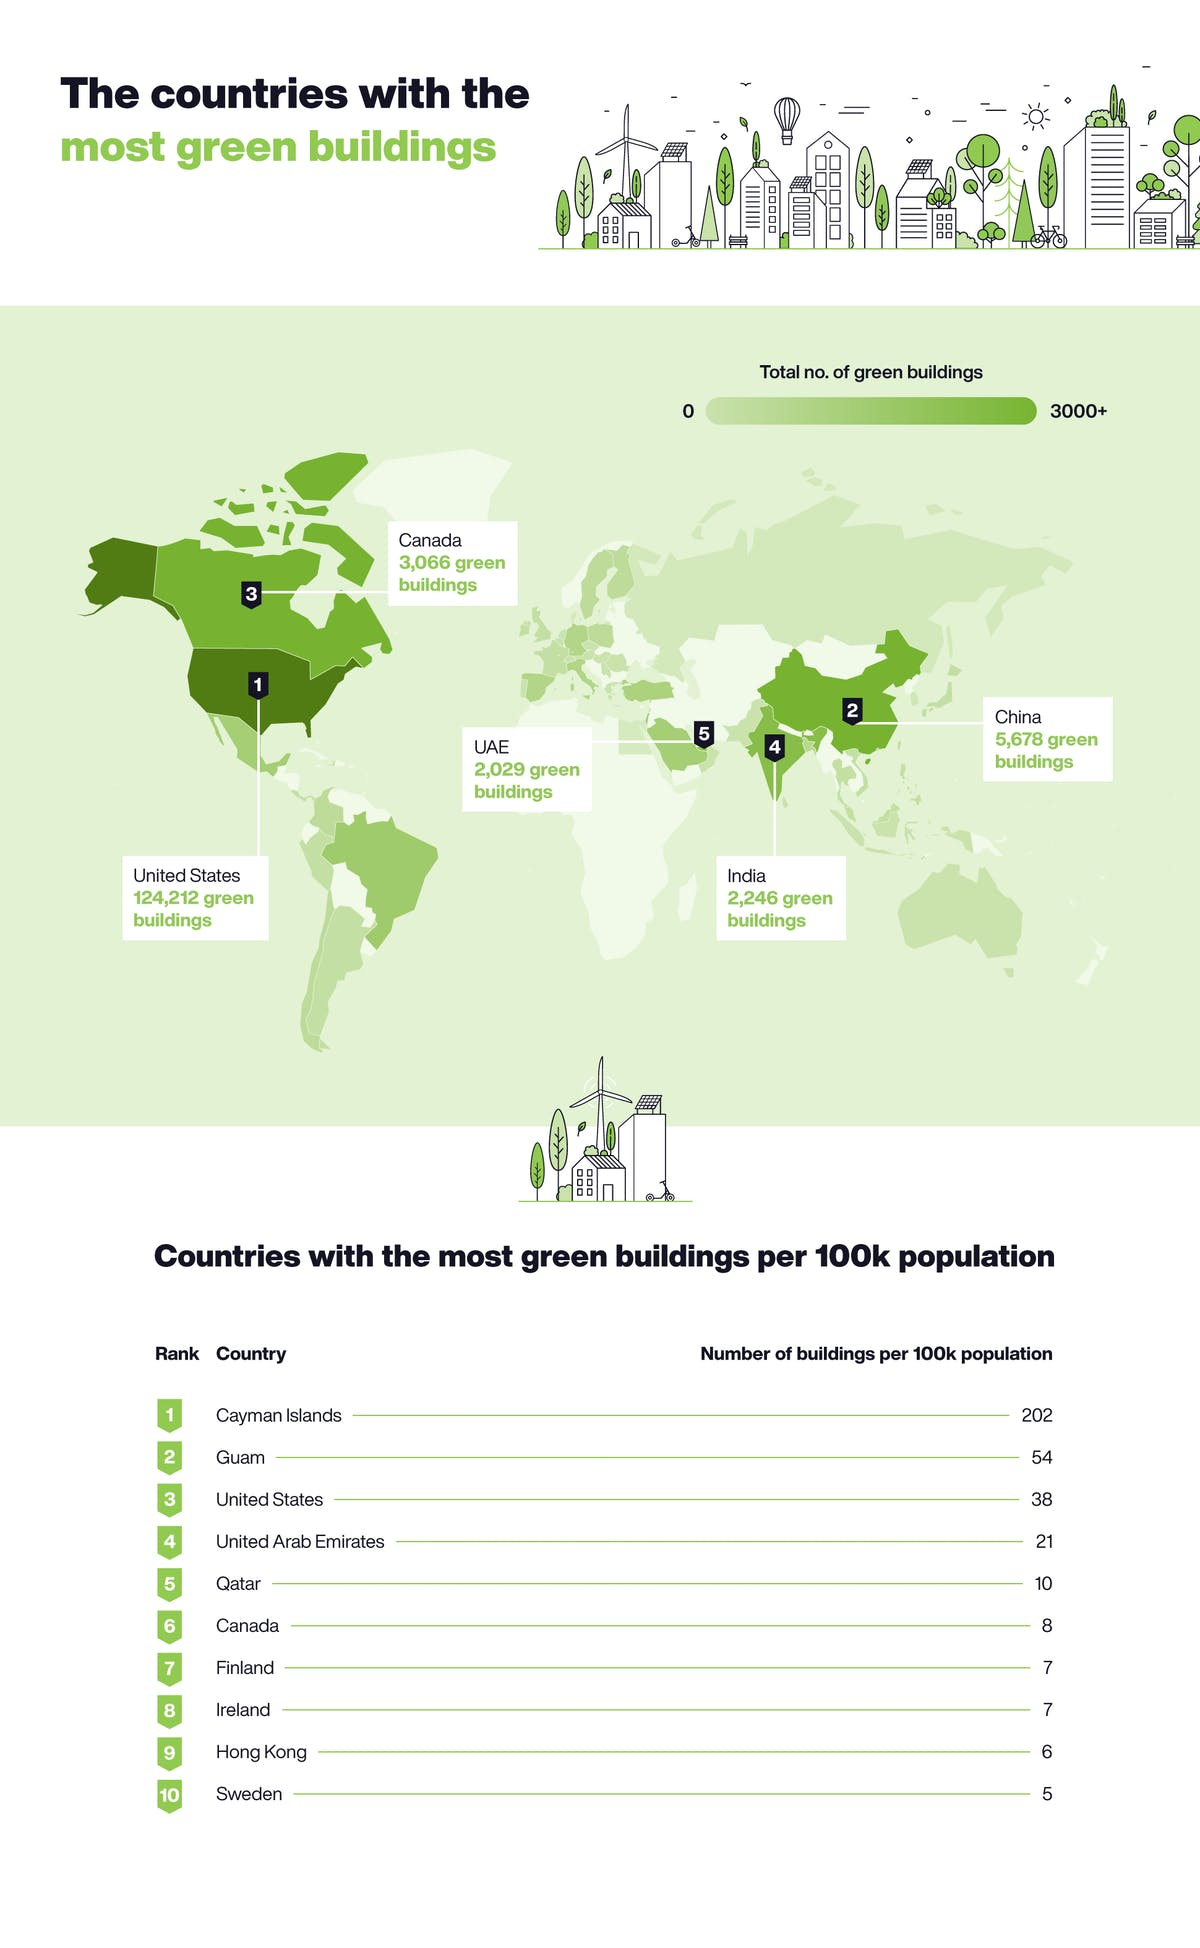 The countries with the most green buildings table.